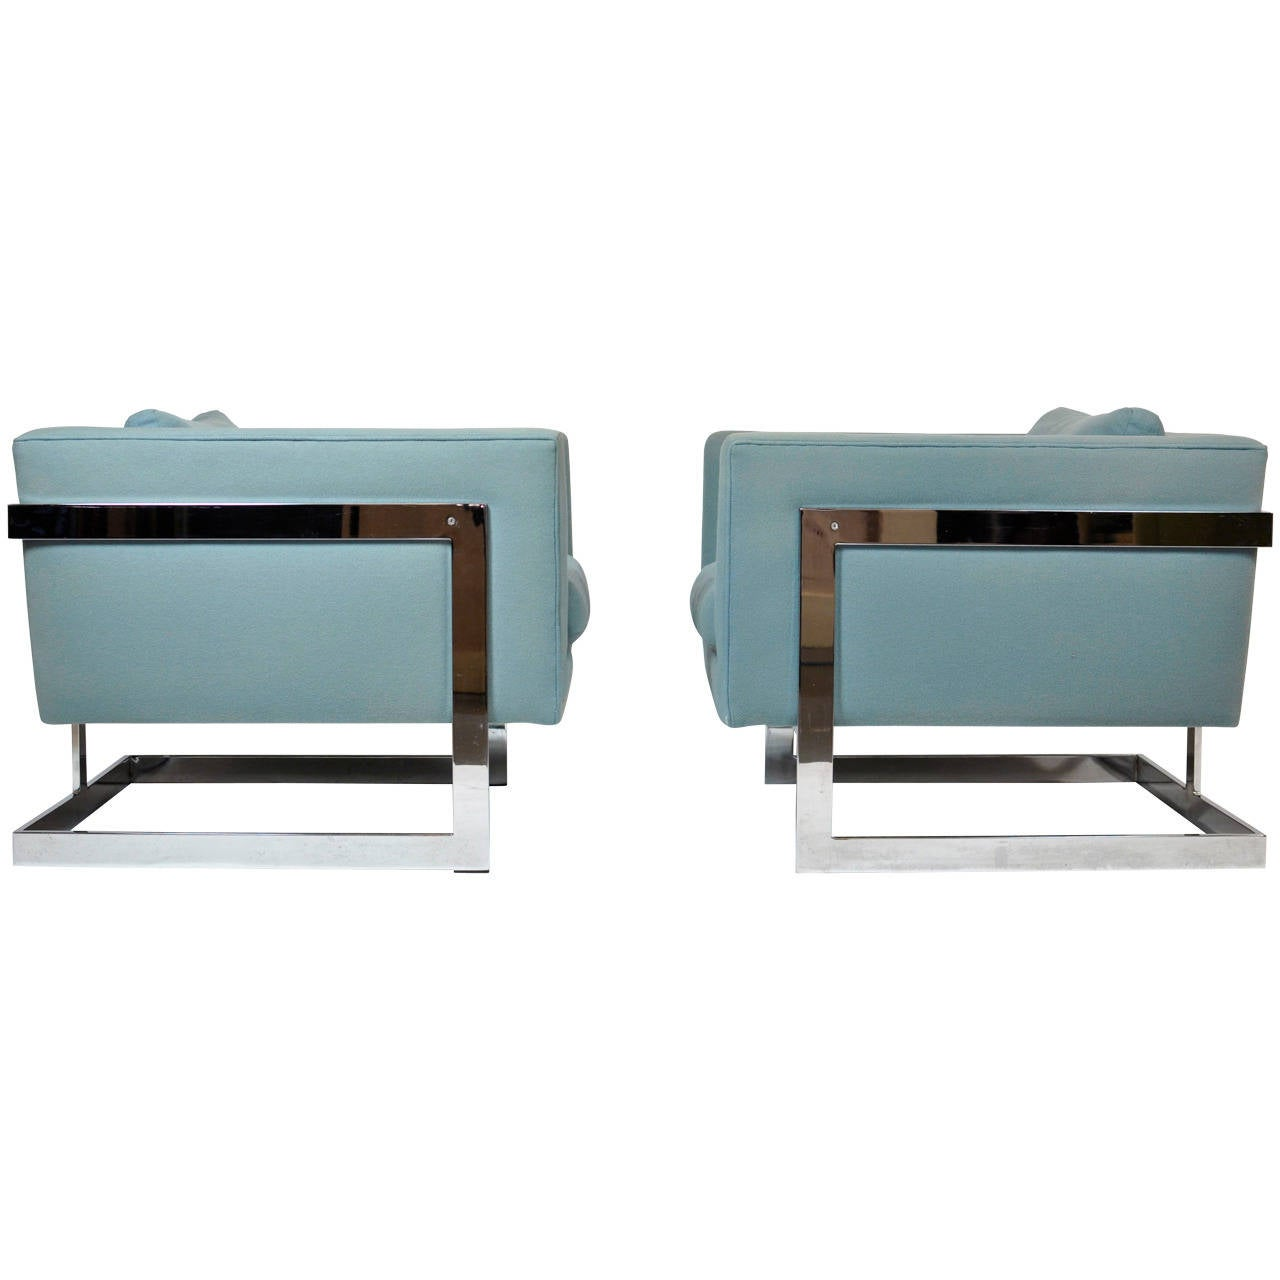 Milo Baughman Cube Lounge Chairs For Sale at 1stdibs